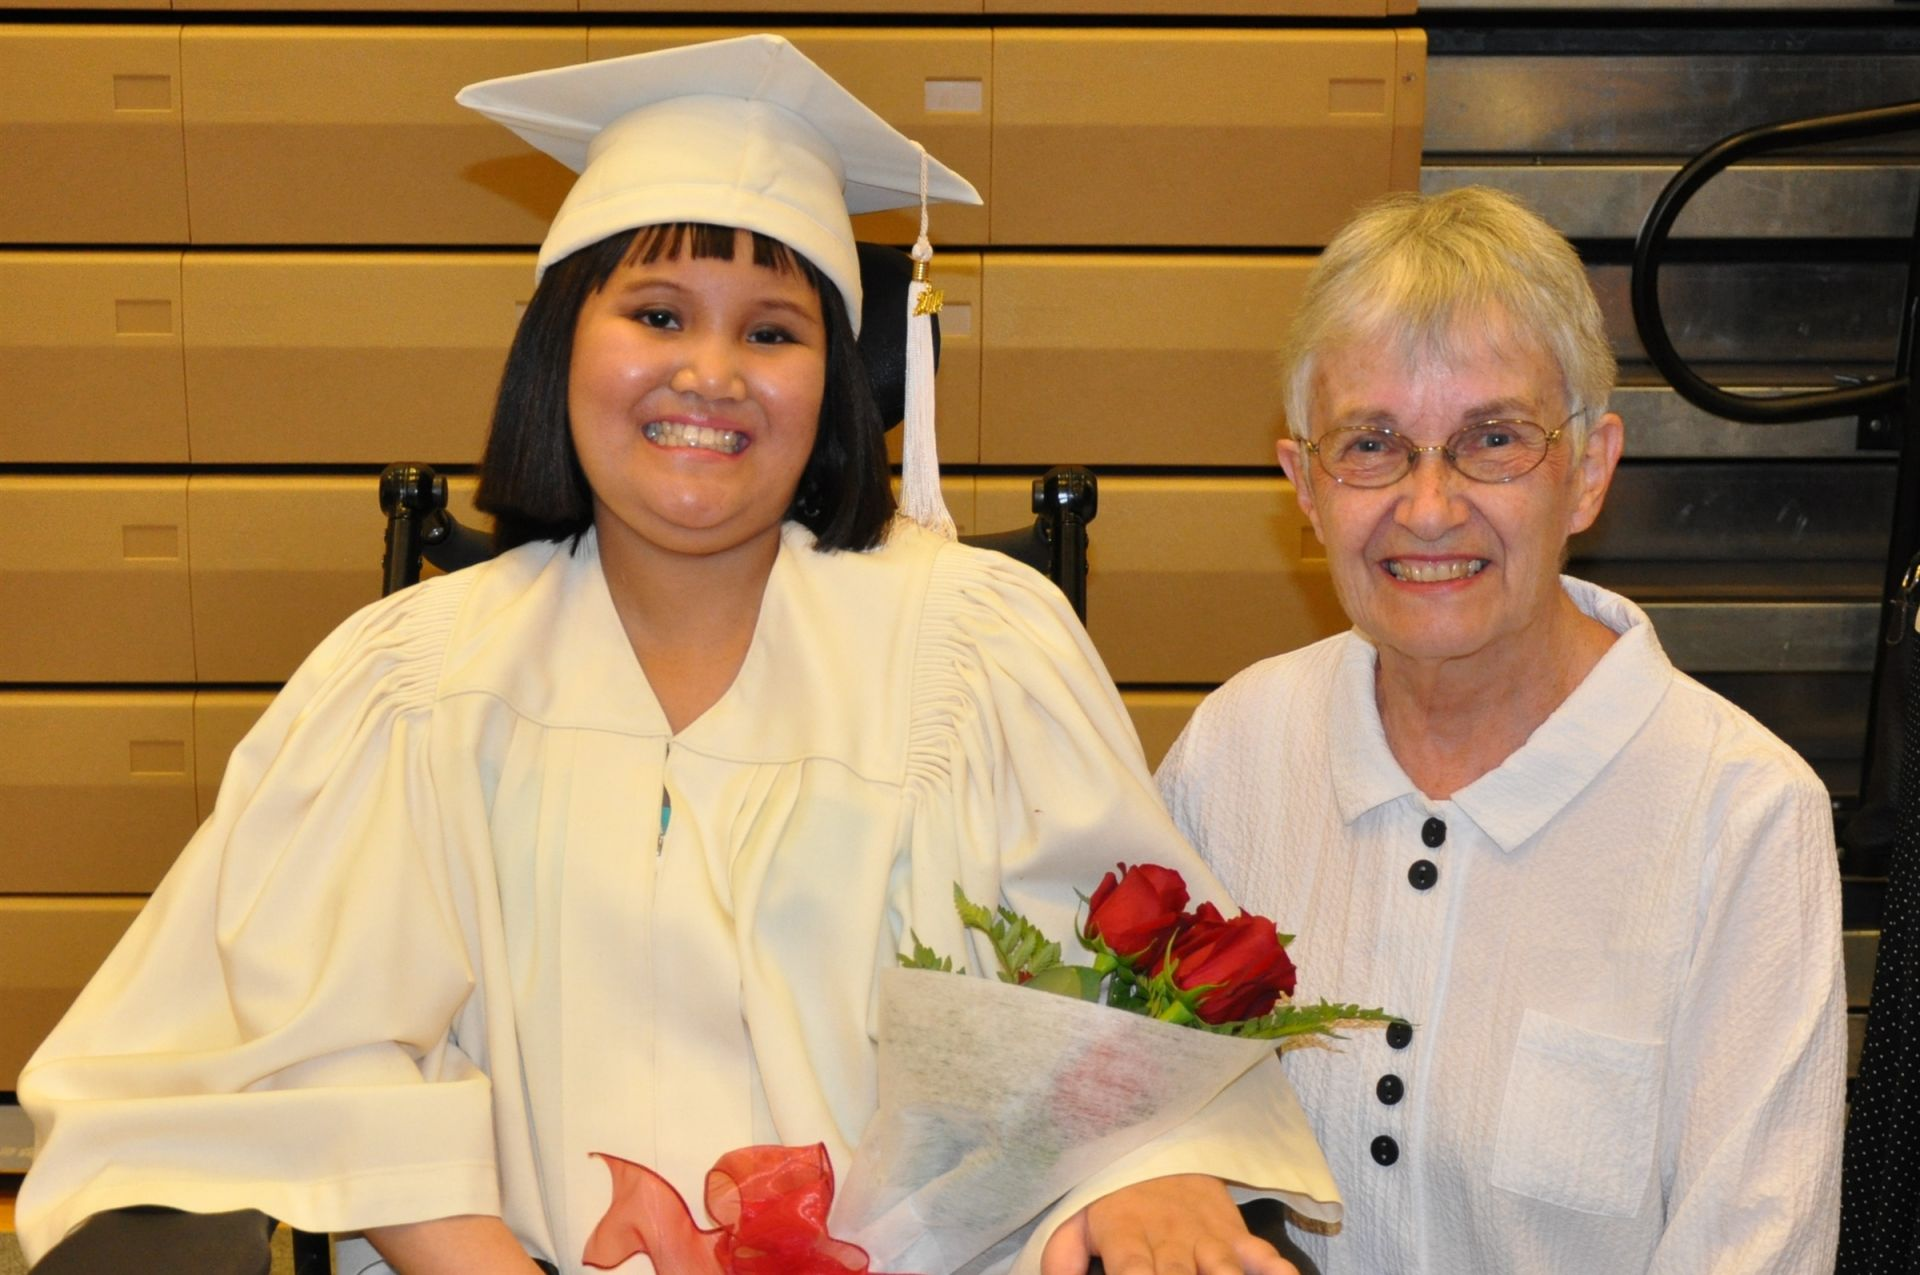 Brenda and Shawntel Escobar '14. Brenda tutored Shawntel through her graduating year as Shawntel successfully battled cancer.